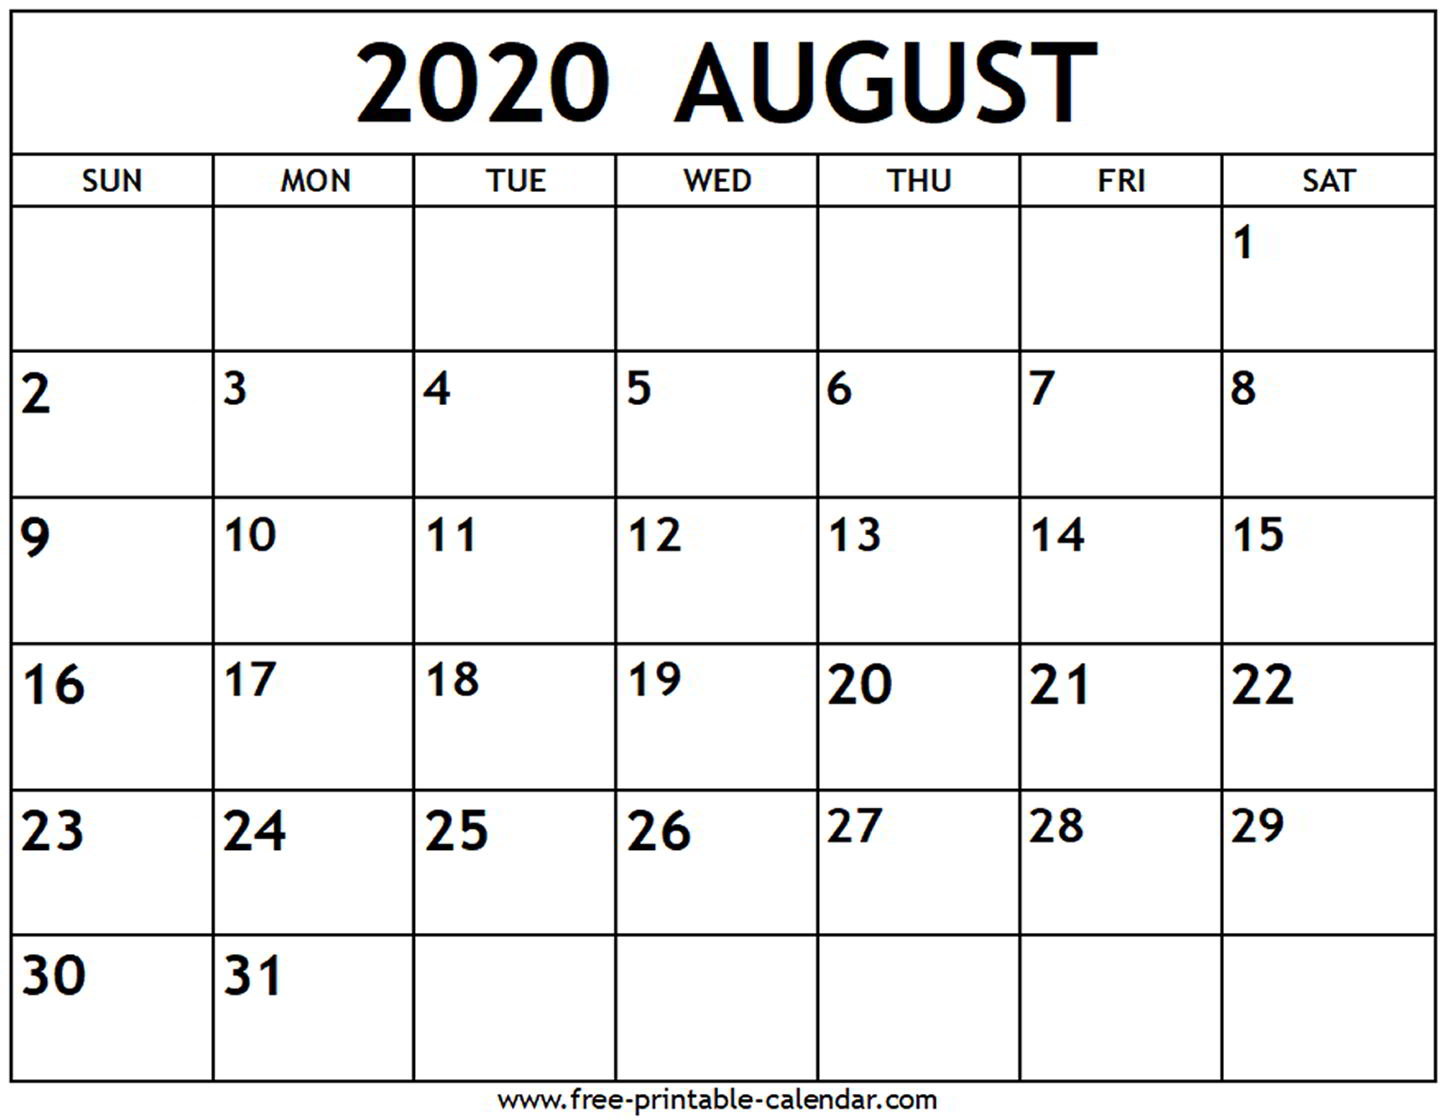 August 2020 Calendar - Free-Printable-Calendar within Free Fill In Calendars 2020